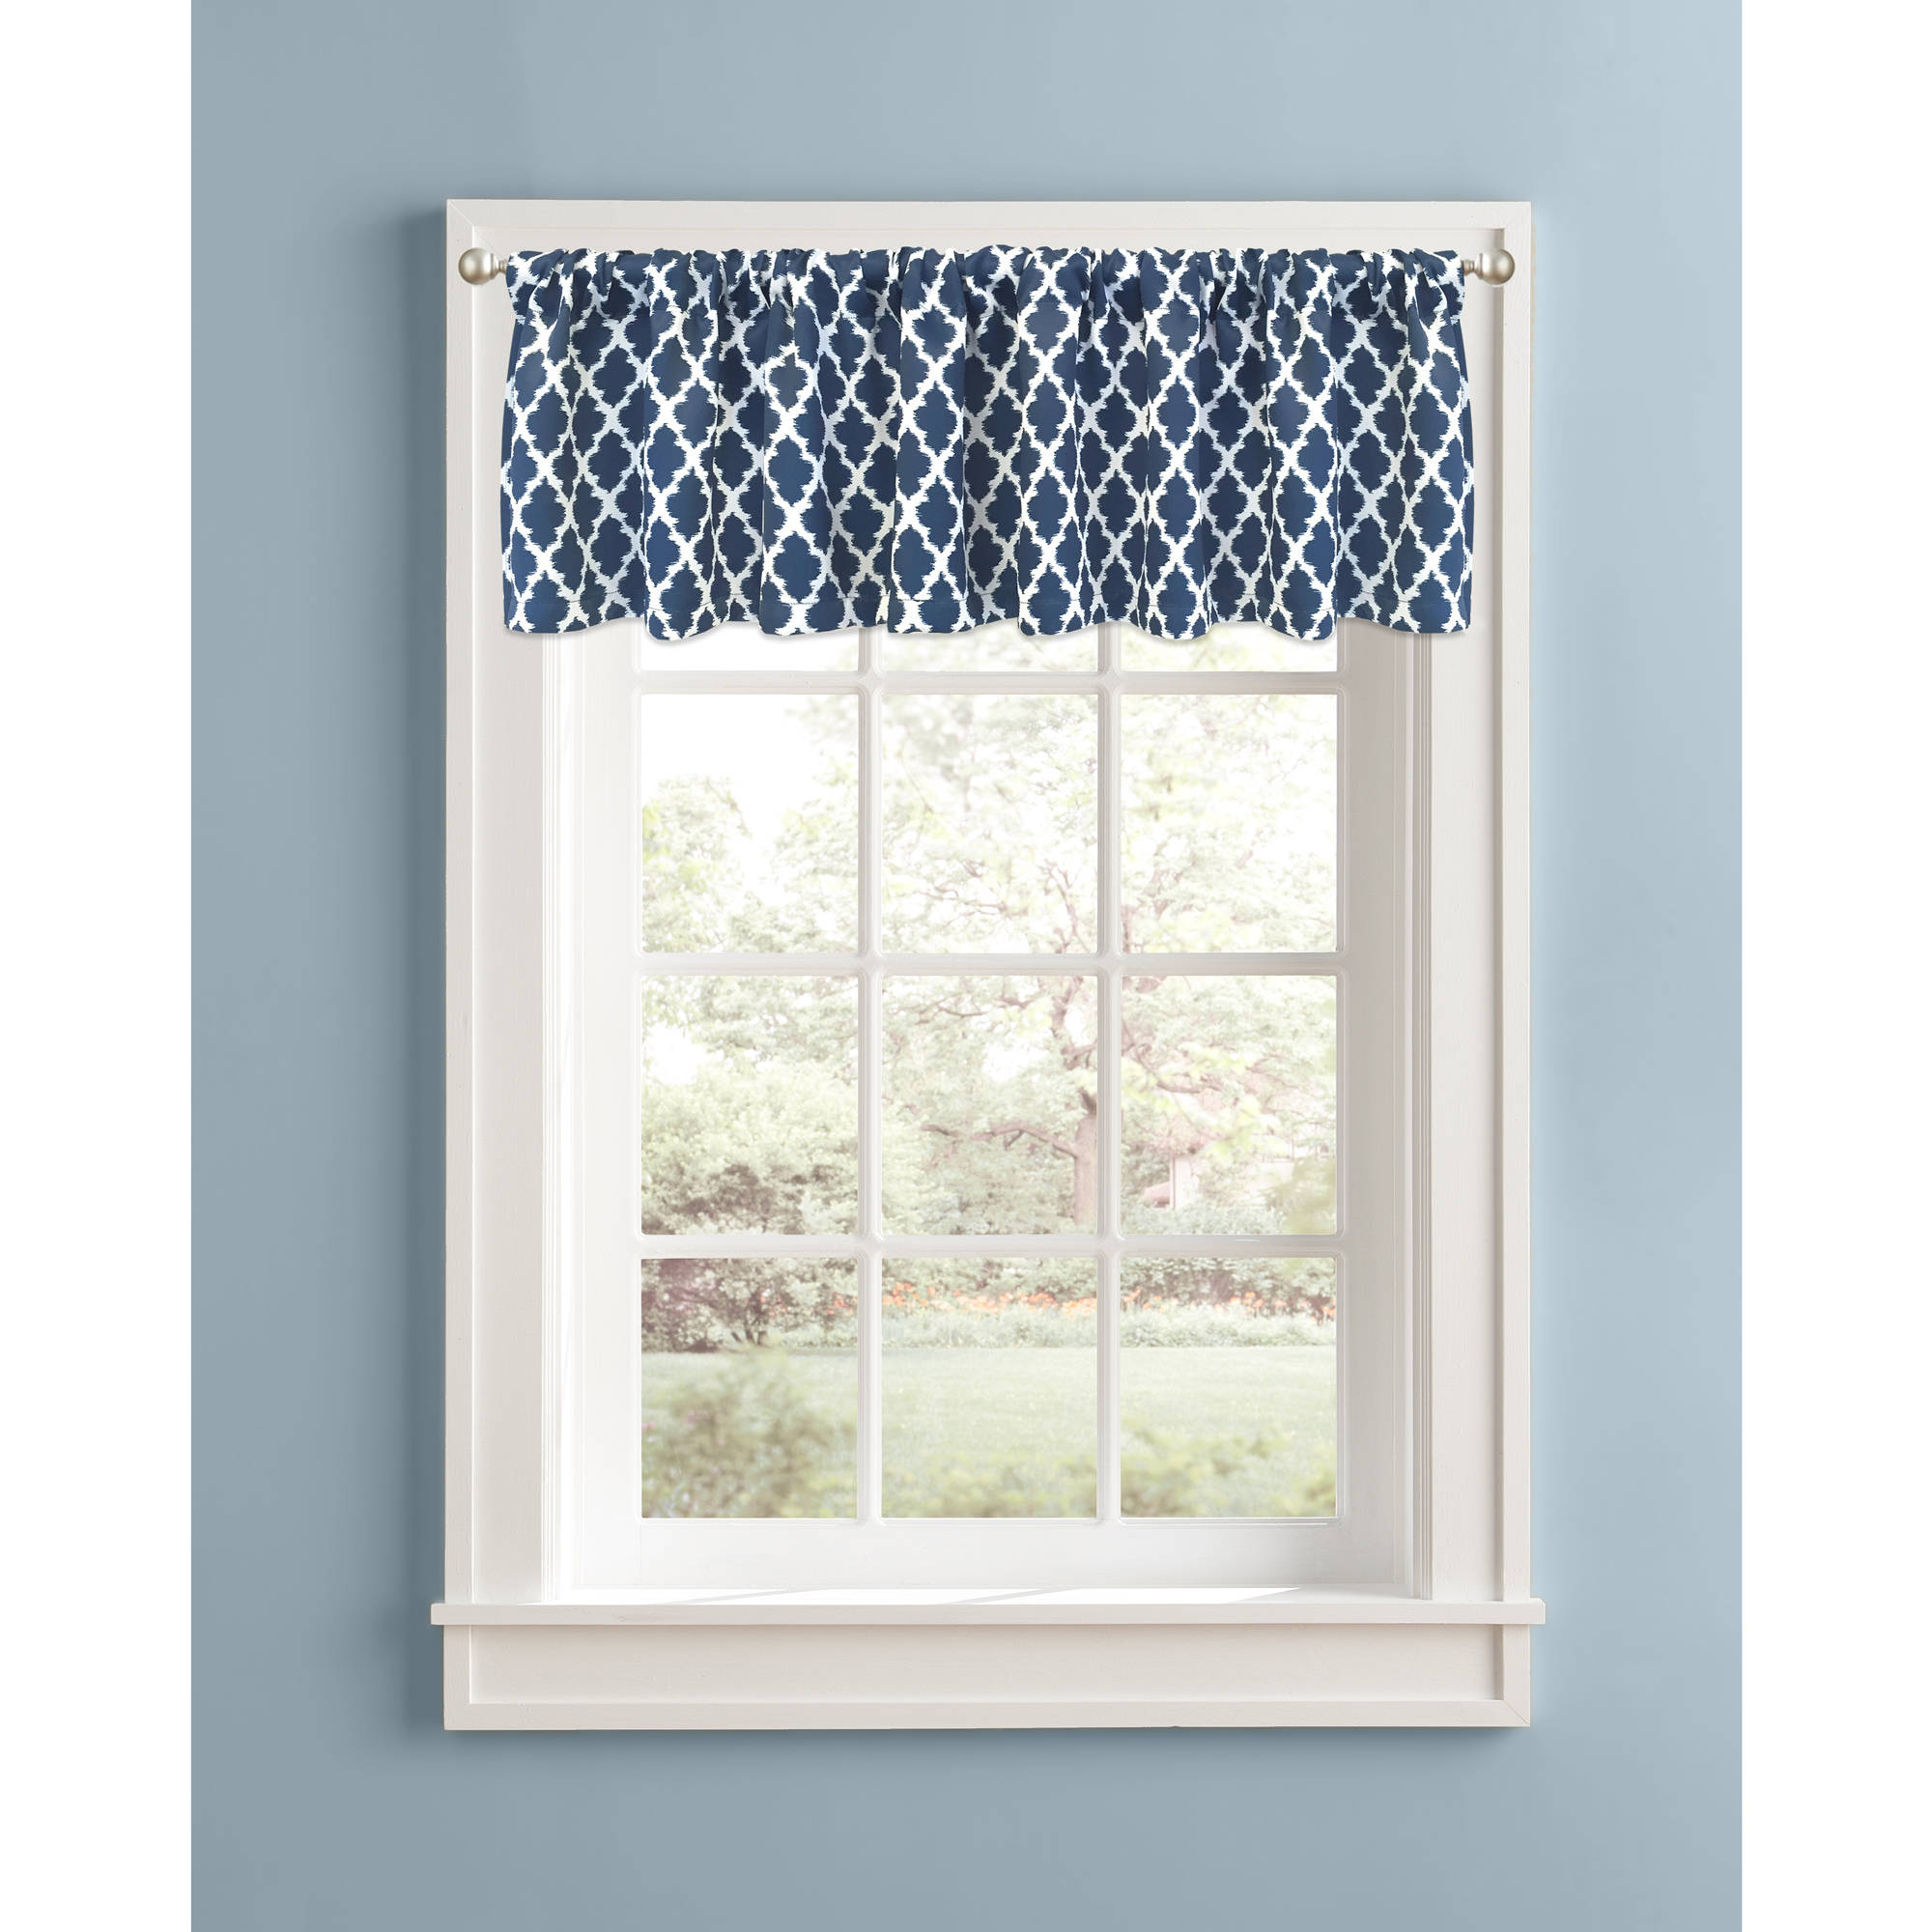 Better Homes and Gardens Indigo Tangier 99 Percent Light Blocking Valance by Colordrift LLC